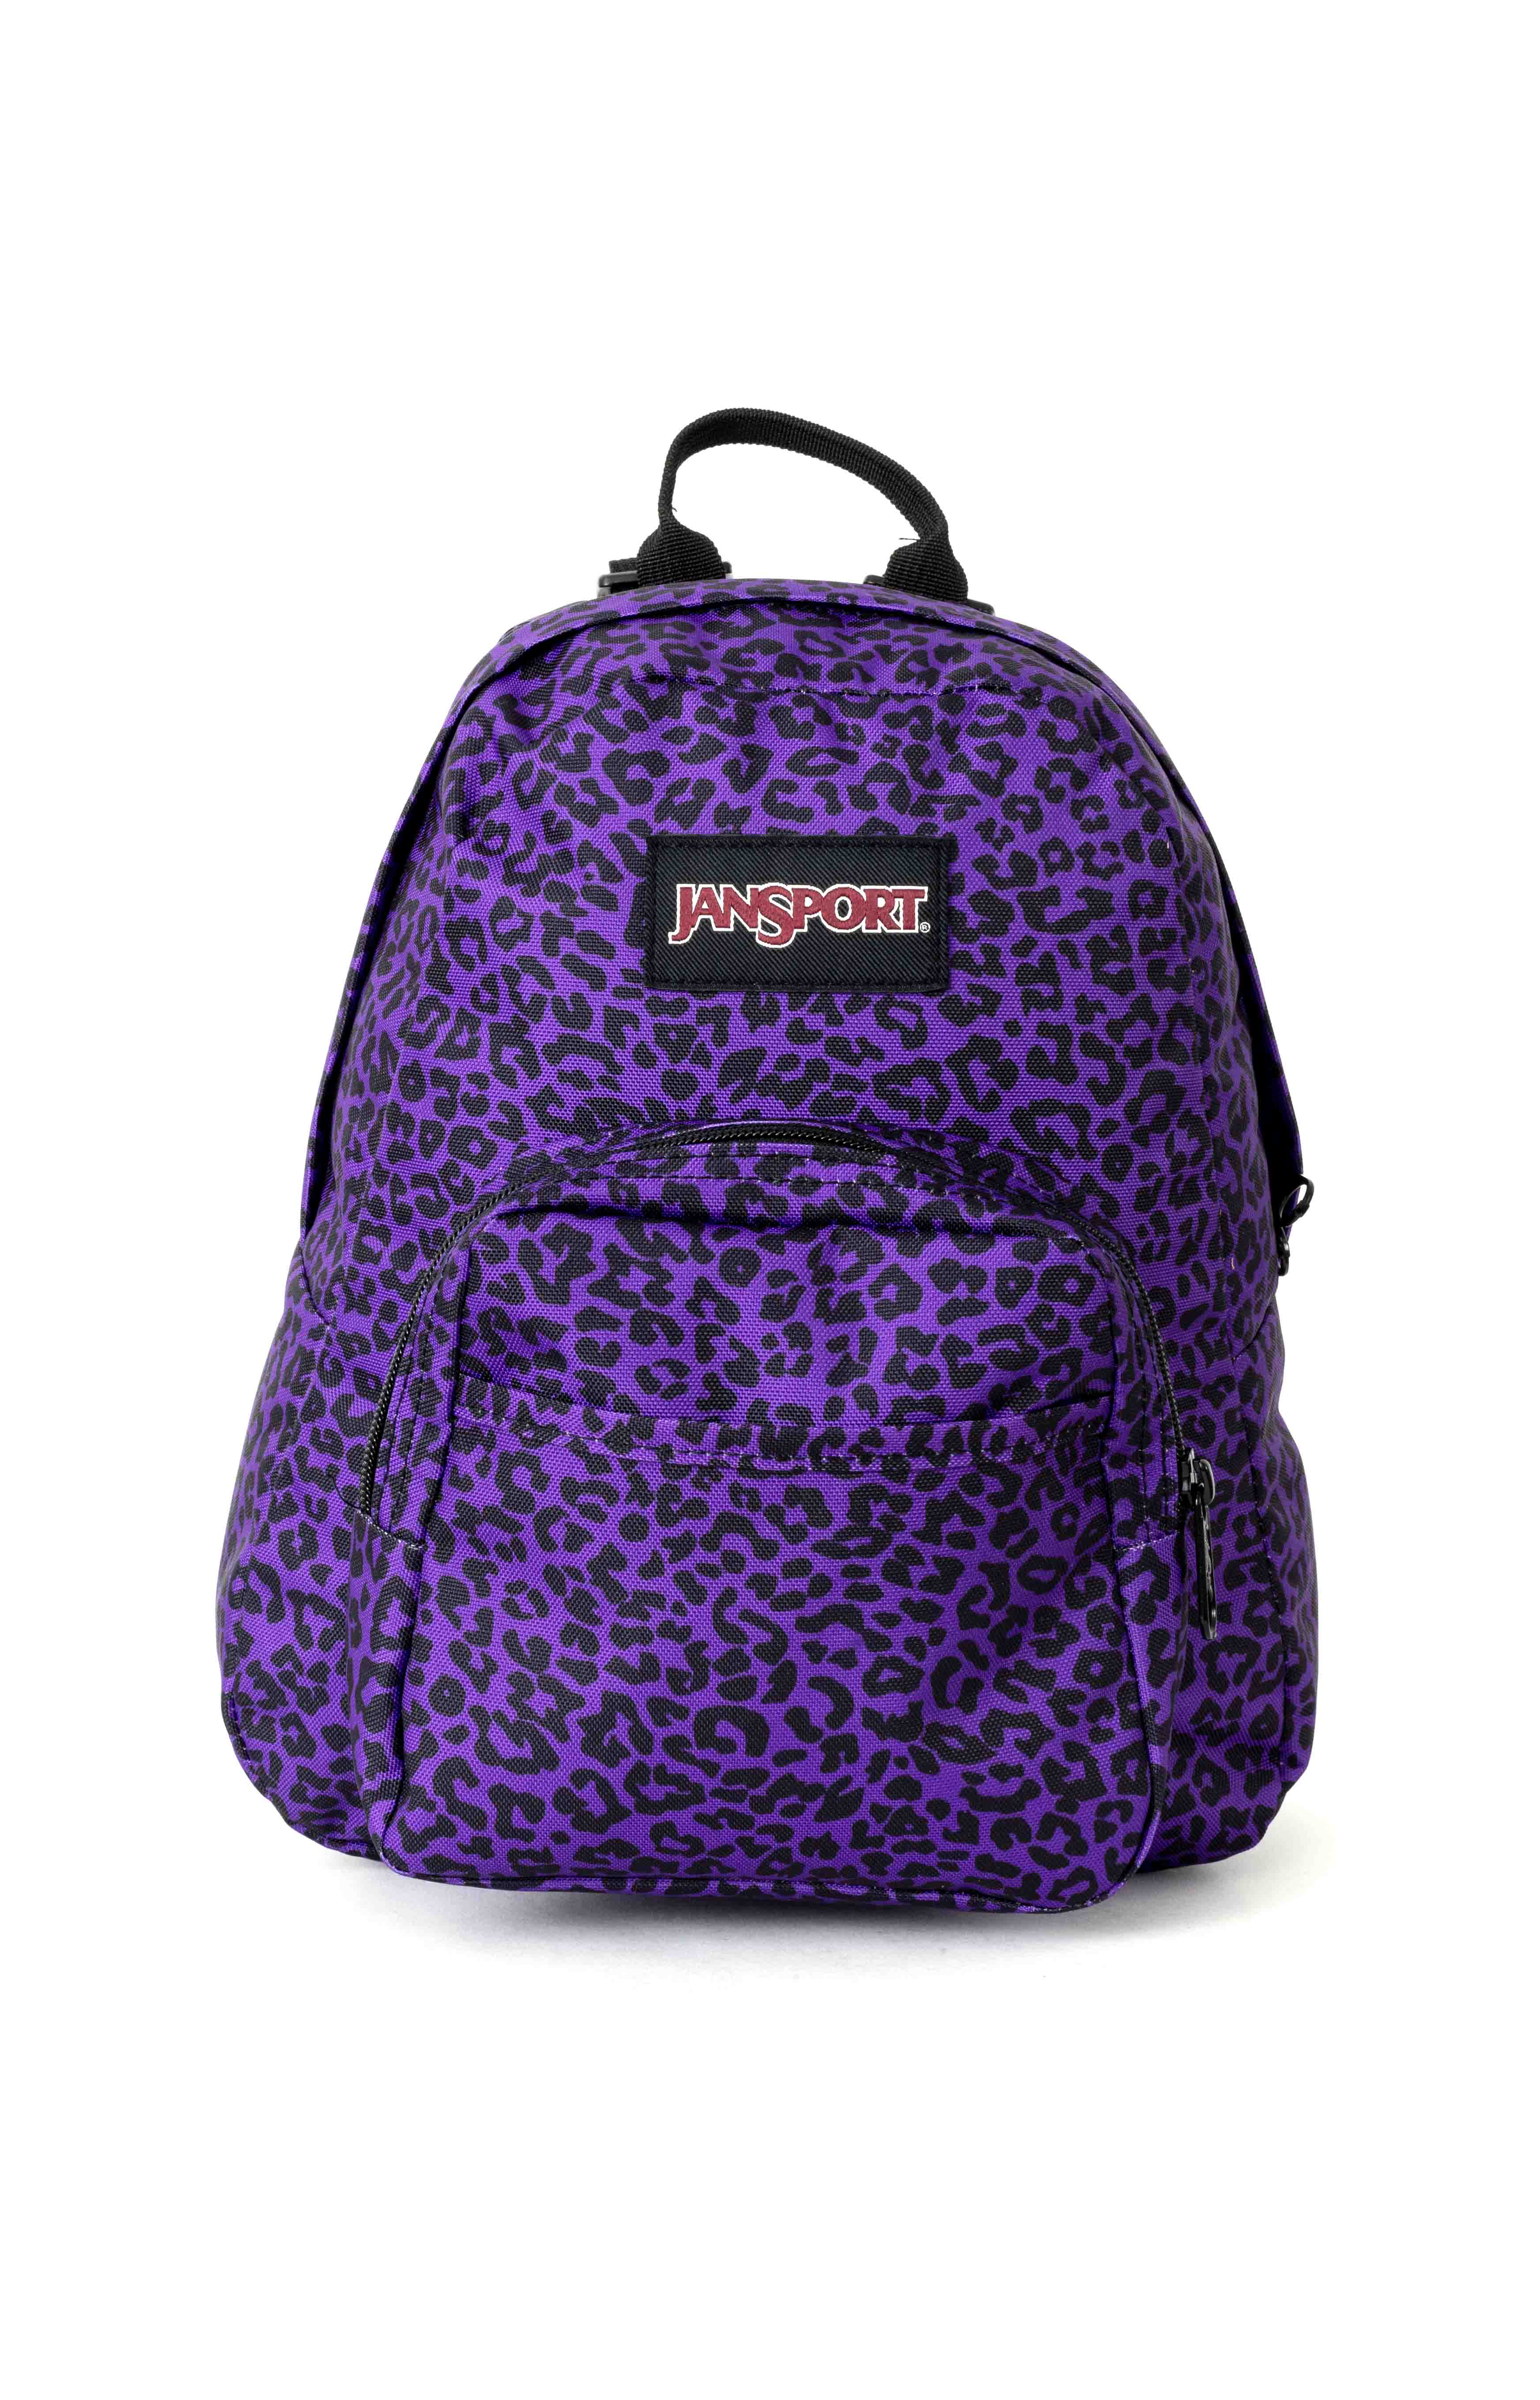 Half Pint Mini Backpack - Purple Leopard Life